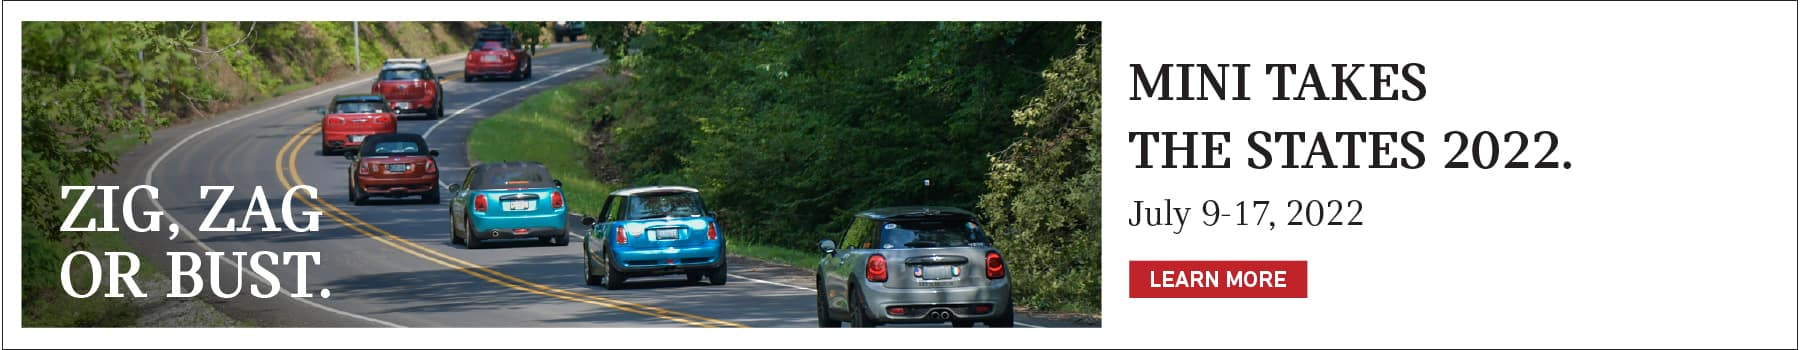 MINI takes the states 2022. July 9-17, 2022. minitakesthestates.com. Click to learn more. Image shows a line of MINI vehicles driving down the road.